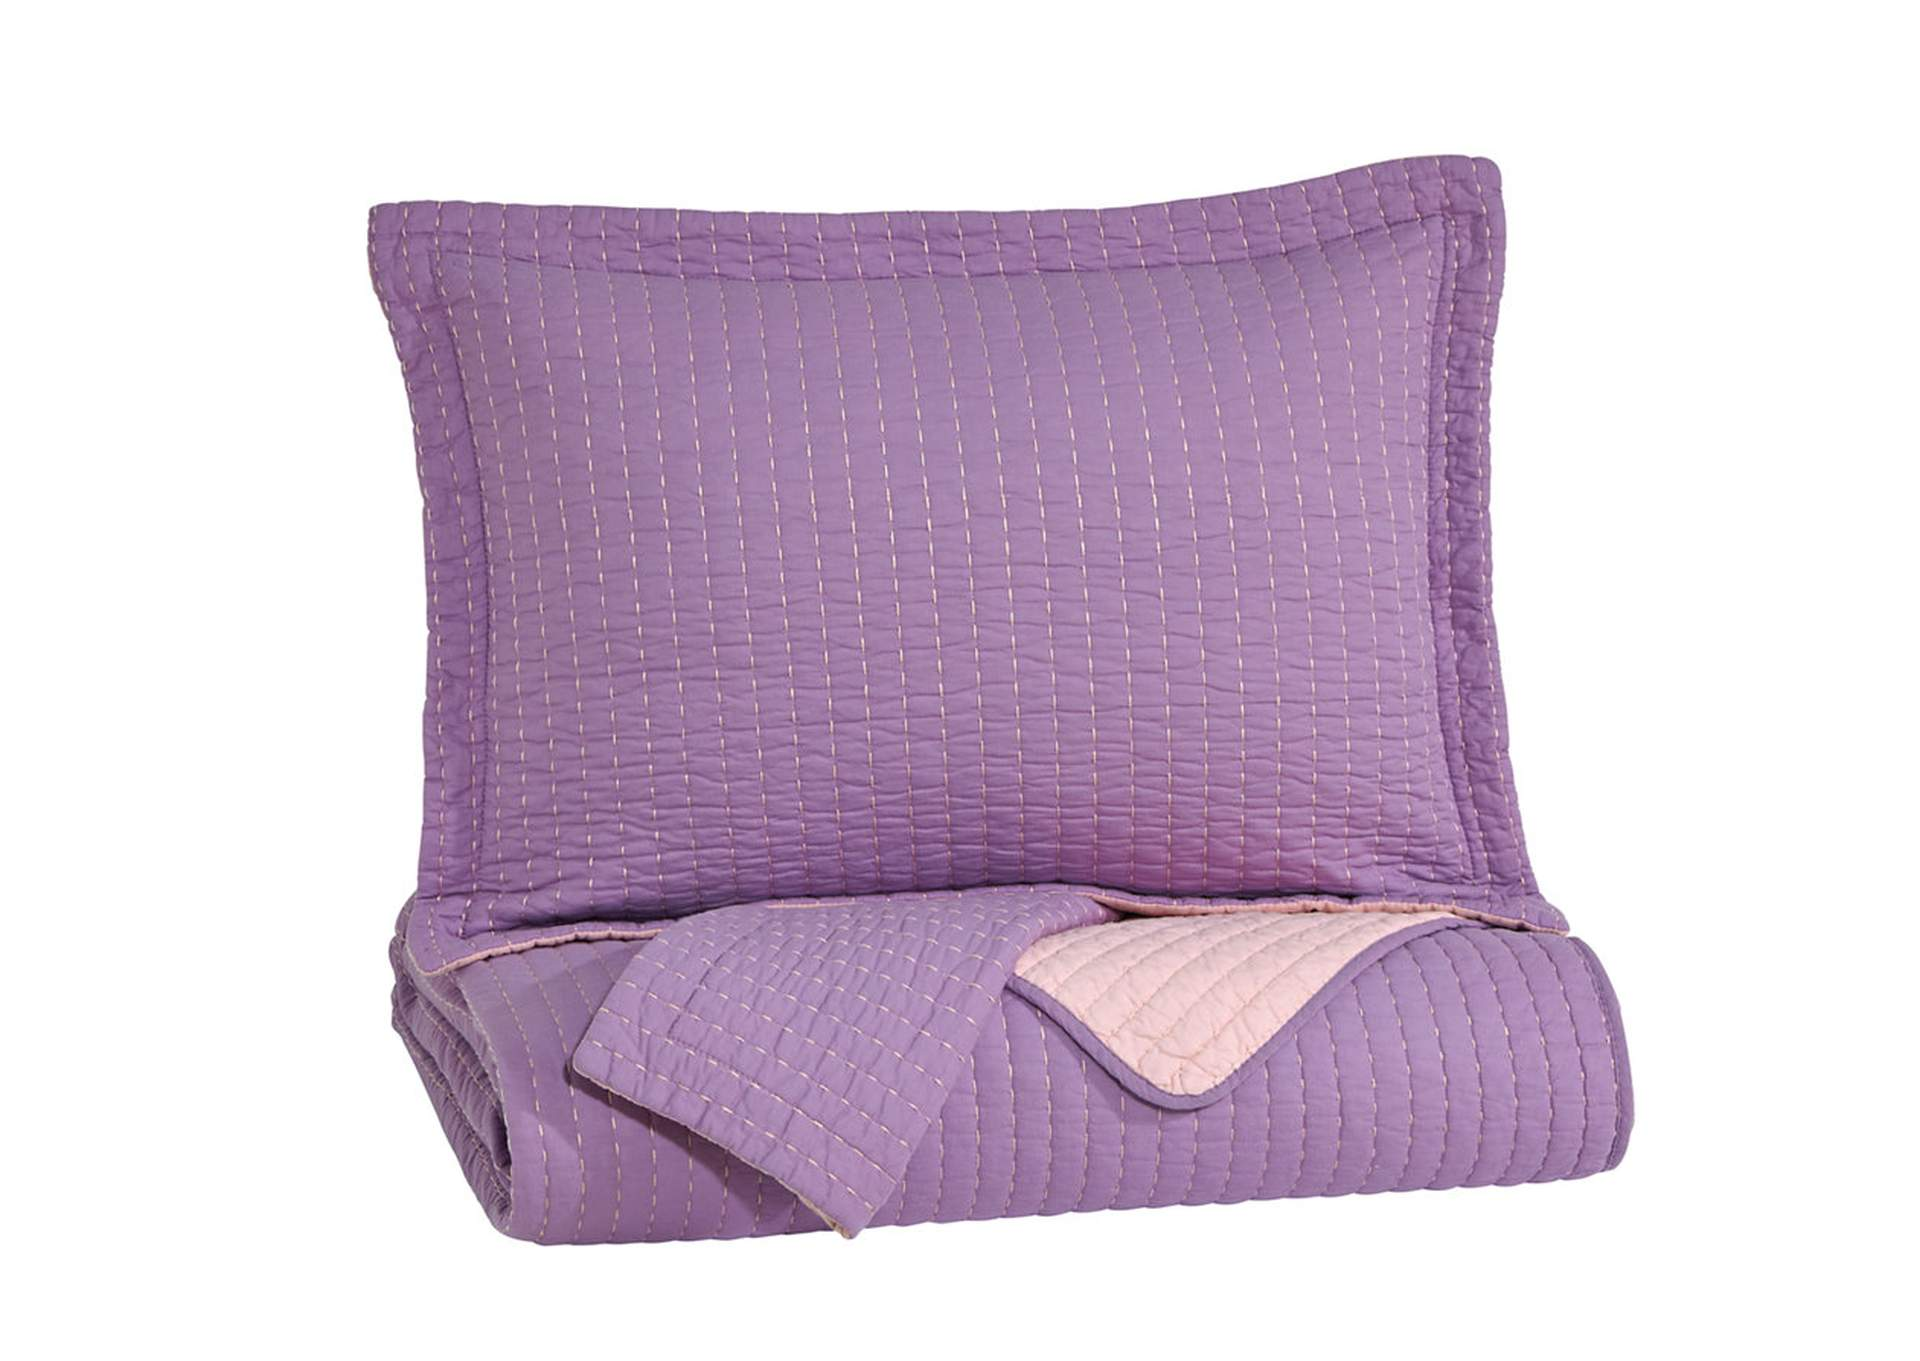 Dansby Lavender/Pink Full Coverlet Set,48 Hour Quick Ship